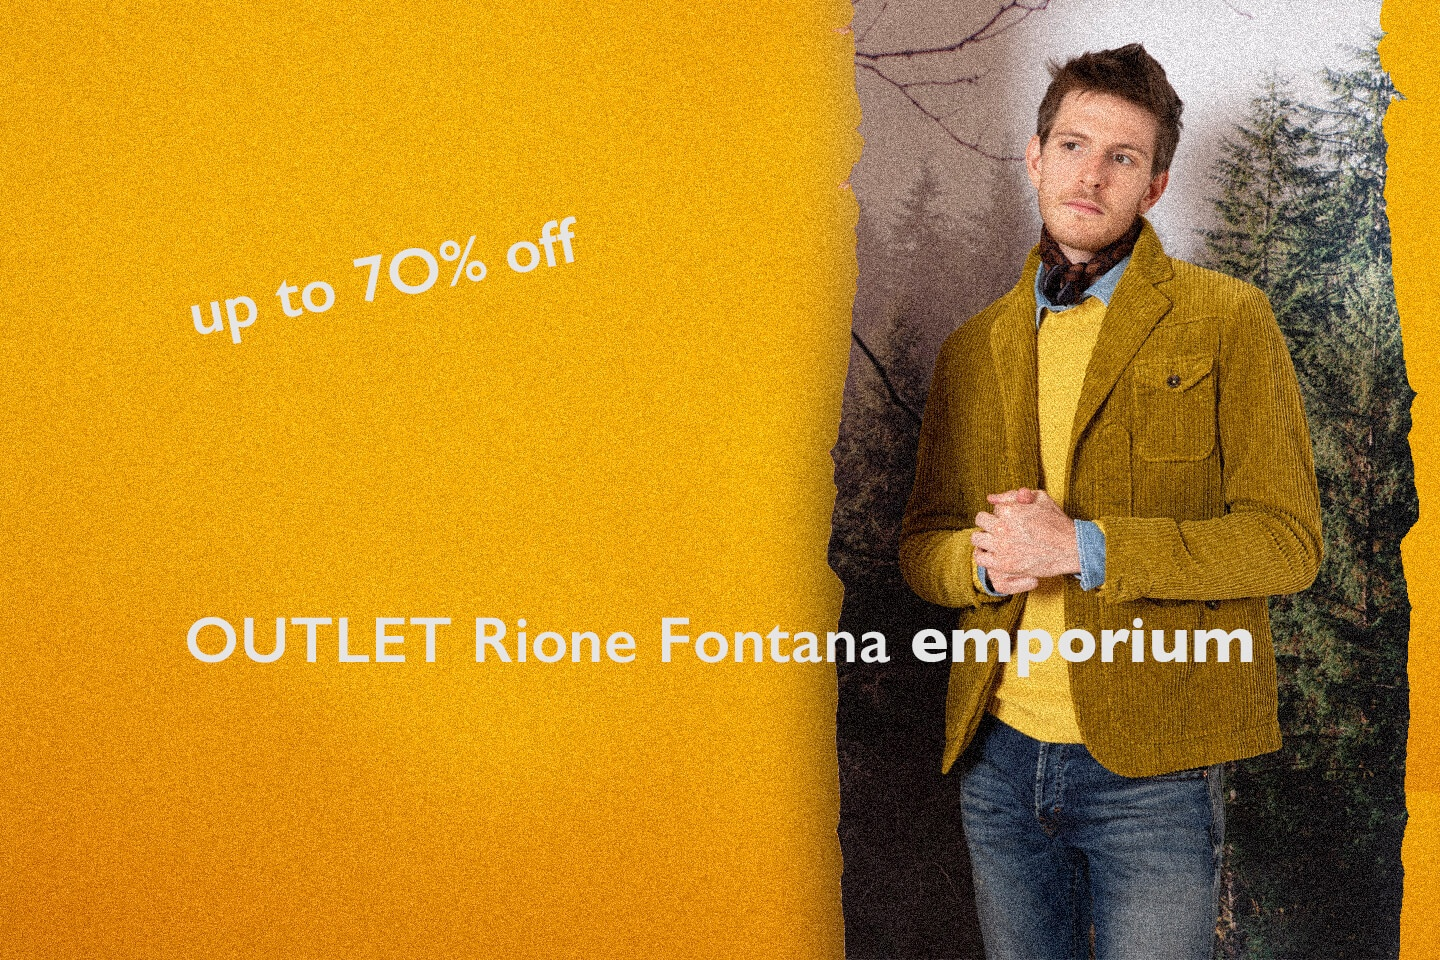 Outlet Uomo - Up To 70% Off!